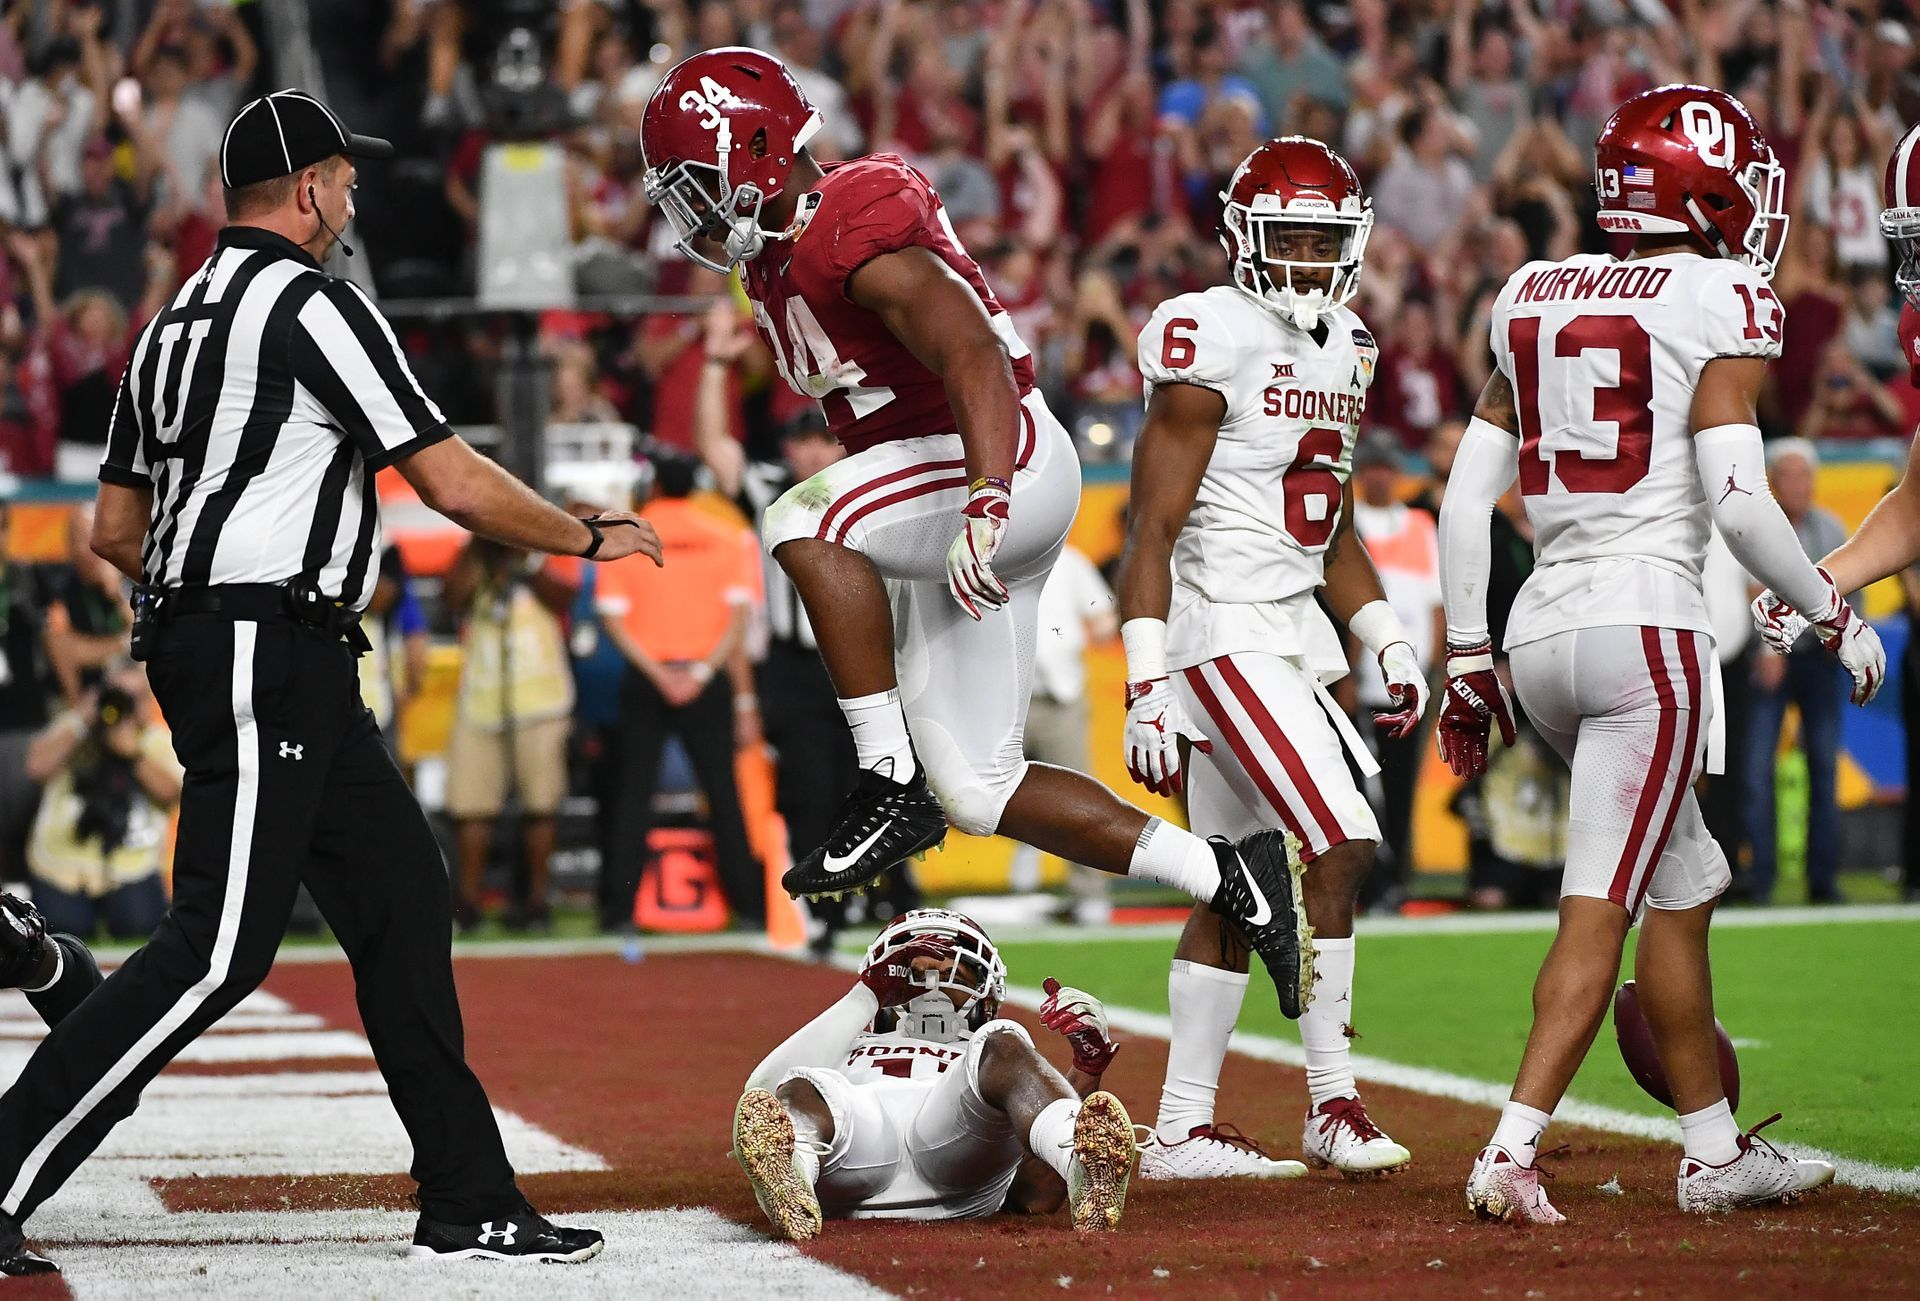 Alabama Returns To Title Game After Beating Oklahoma In Orange Bowl Alabama Football College Football Playoff Alabama Crimson Tide